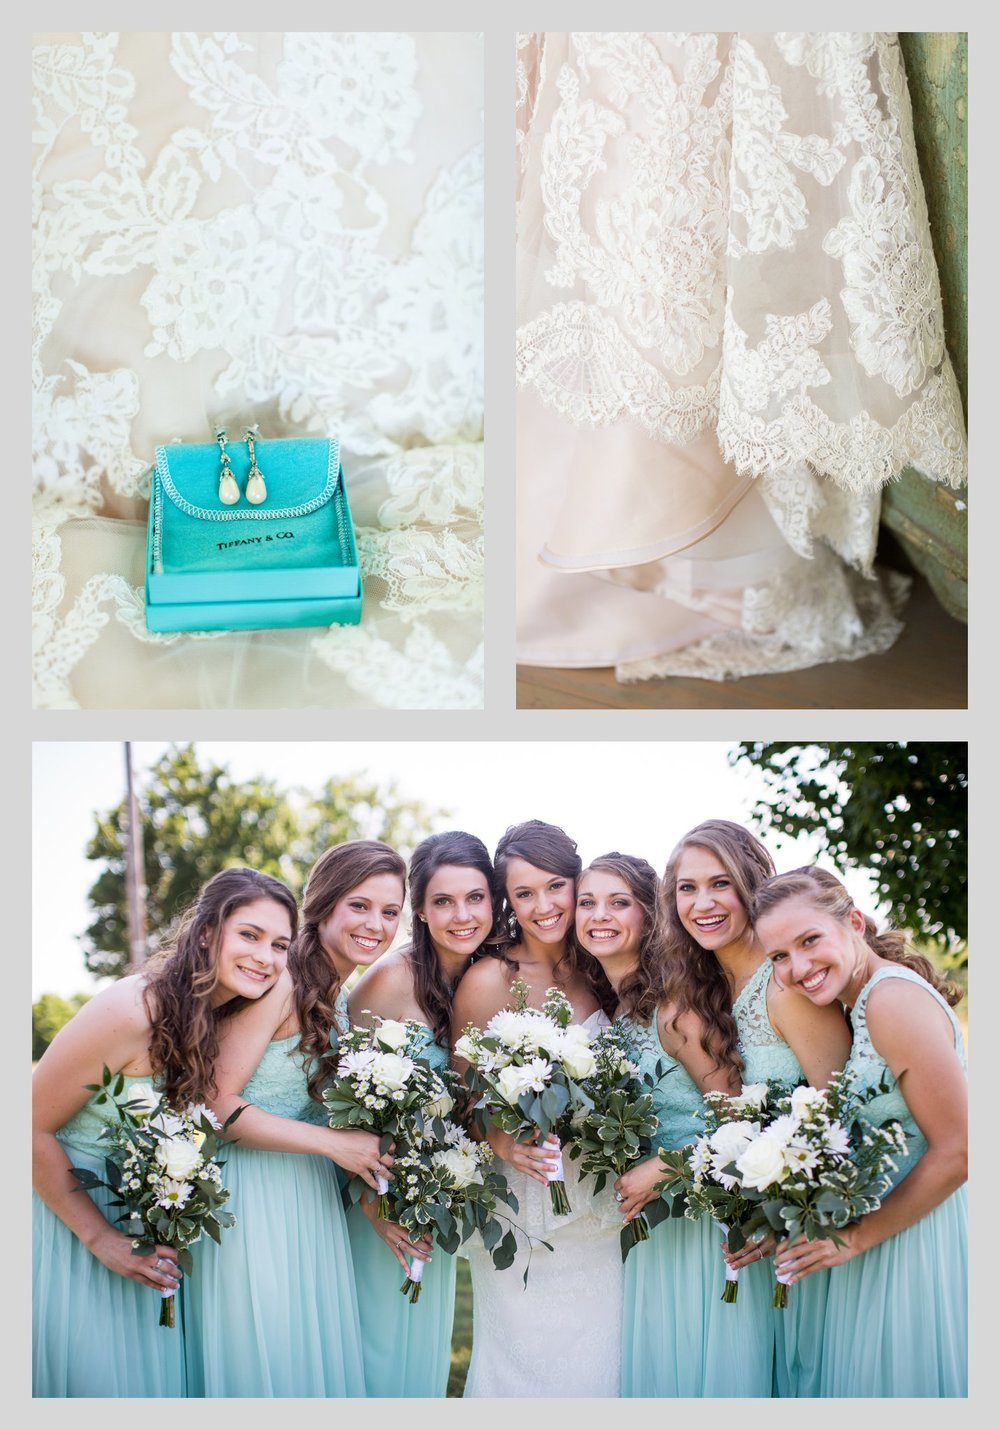 earrings, lace wedding dress and bride with bridesmaids in blue dresses